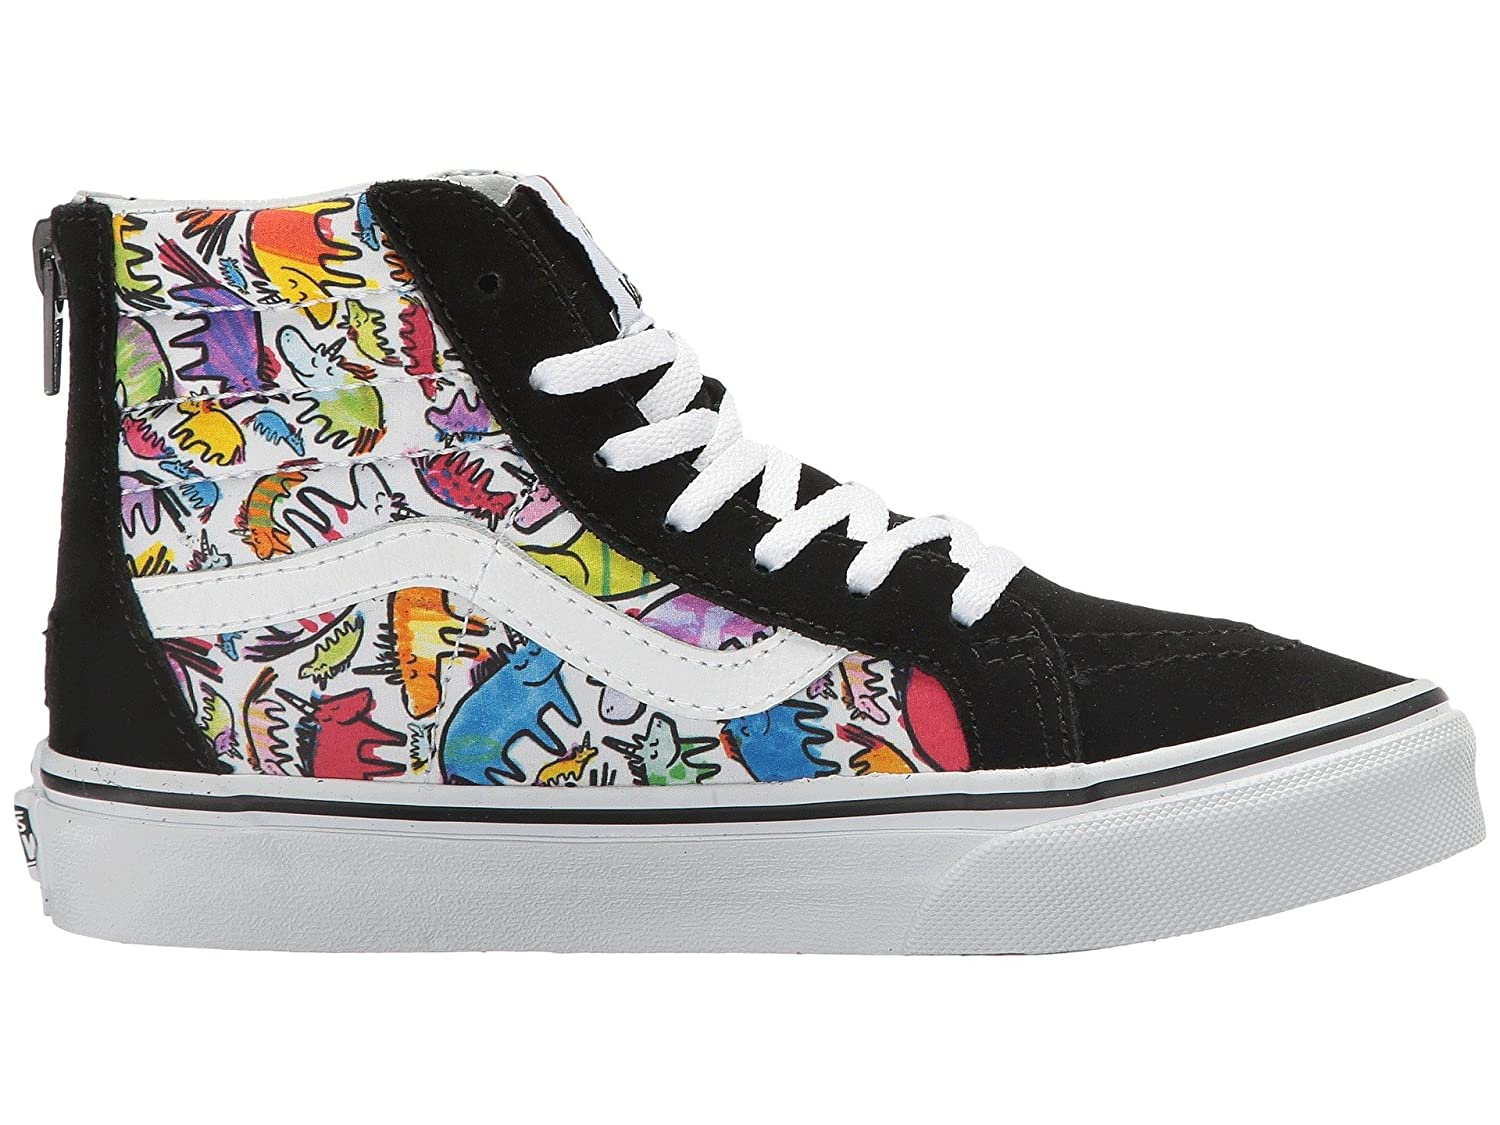 57ffe14387a6e Vans Dallas Clayton Unicorn SK8 Hi Zip kids youth Shoes Size 10.5